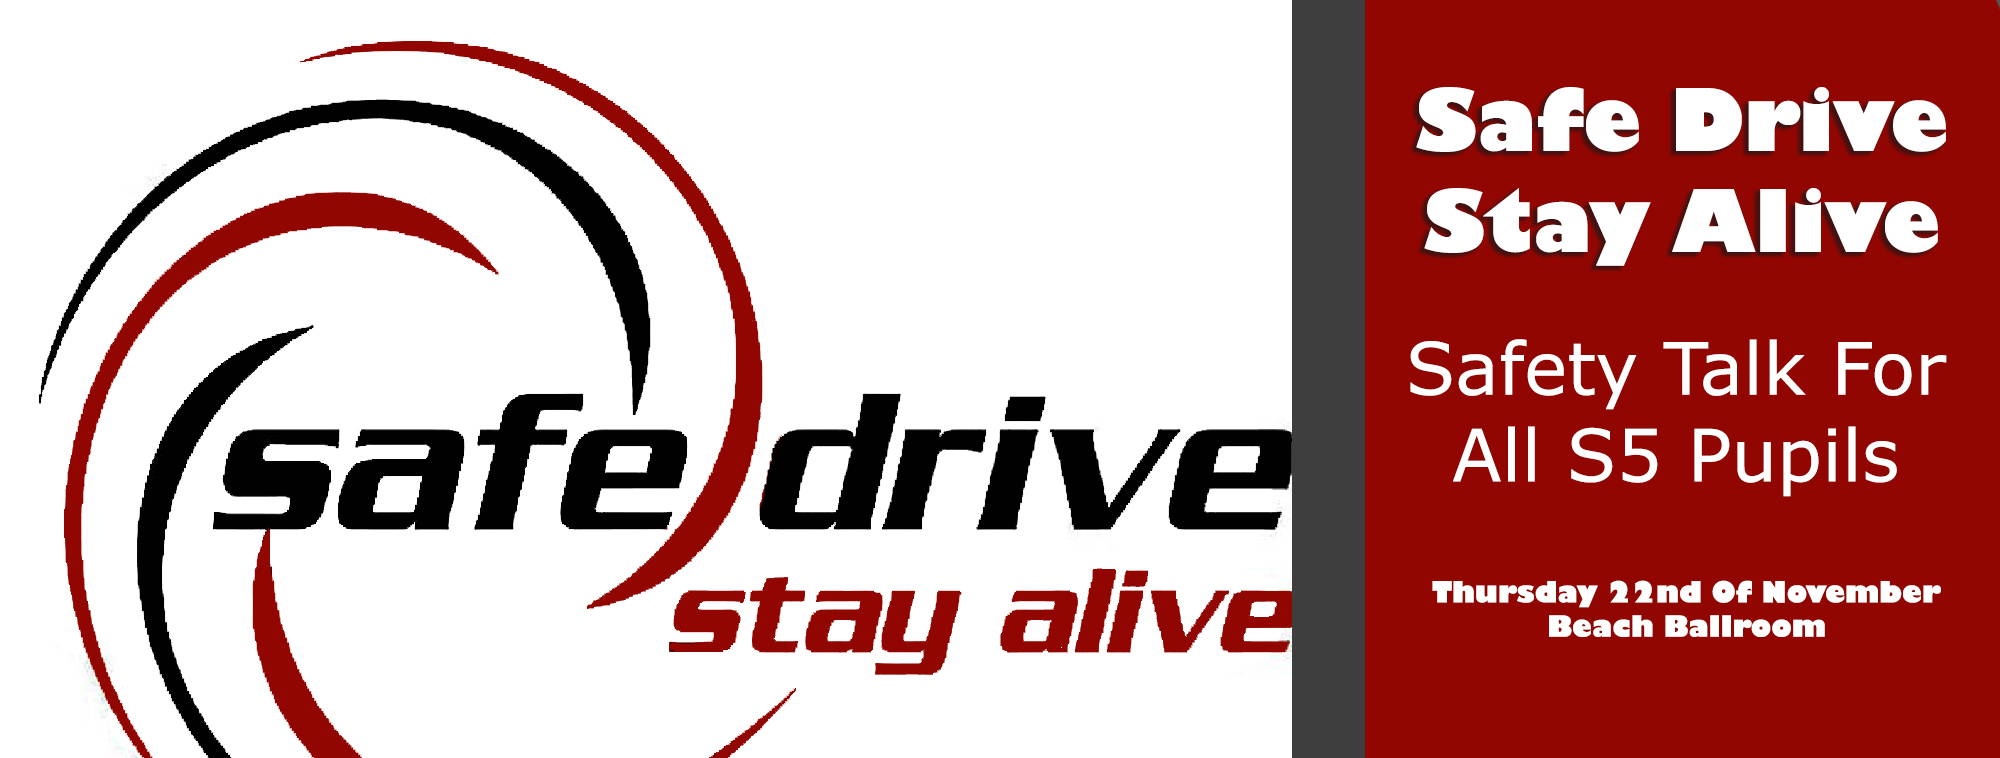 safe drive stay alive safety talk oldmachar academy